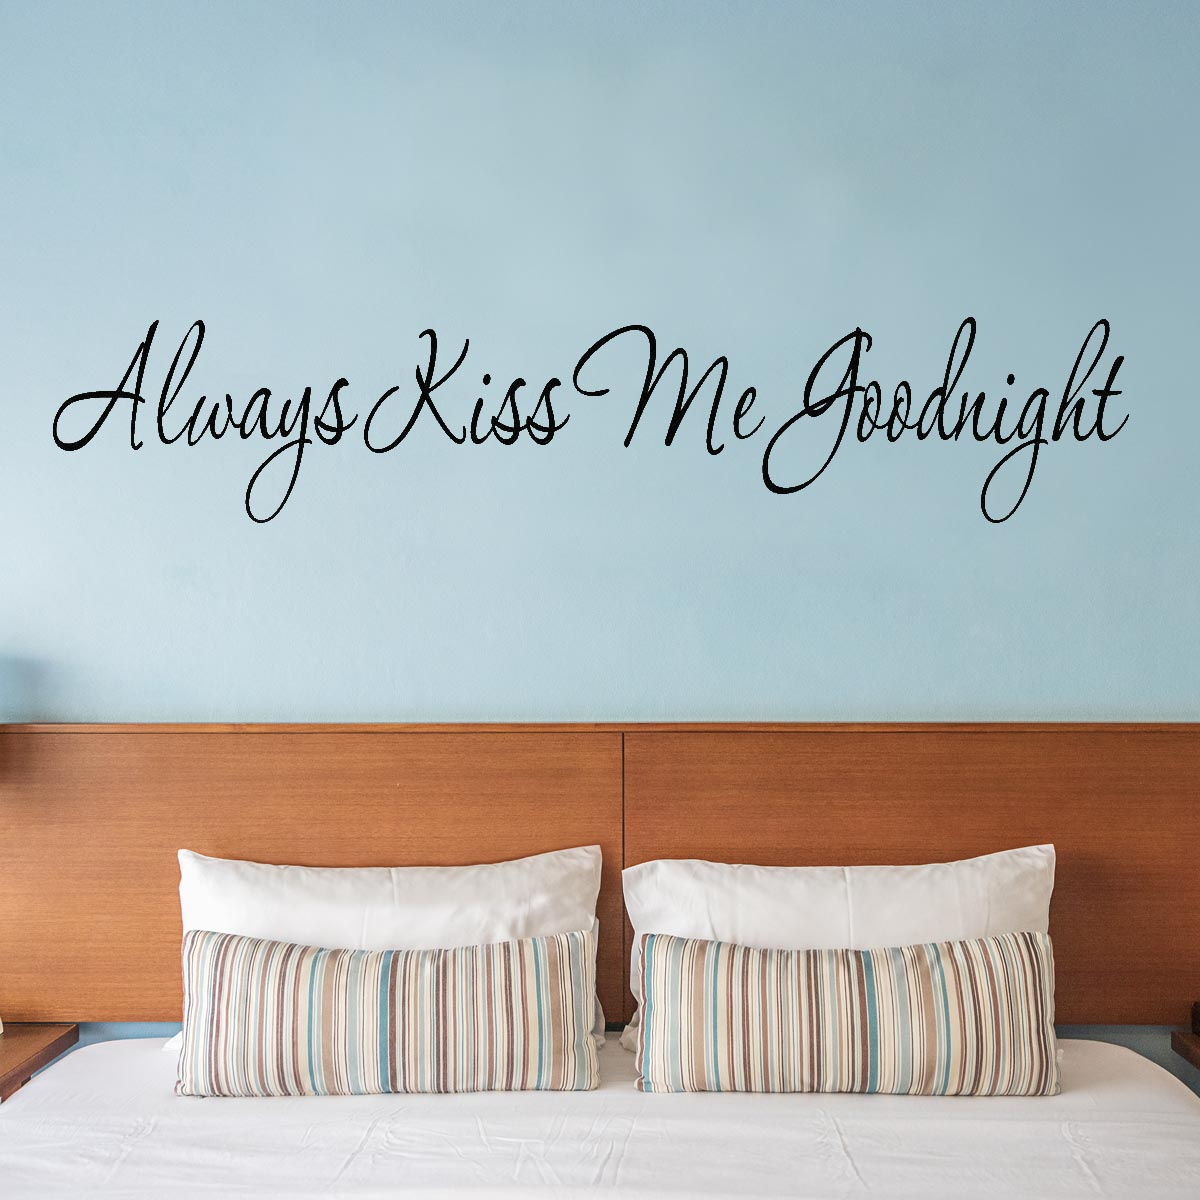 Always Kiss Me Goodnight Wall Quote Decal - VWAQ Vinyl Wall Art Quotes and Prints